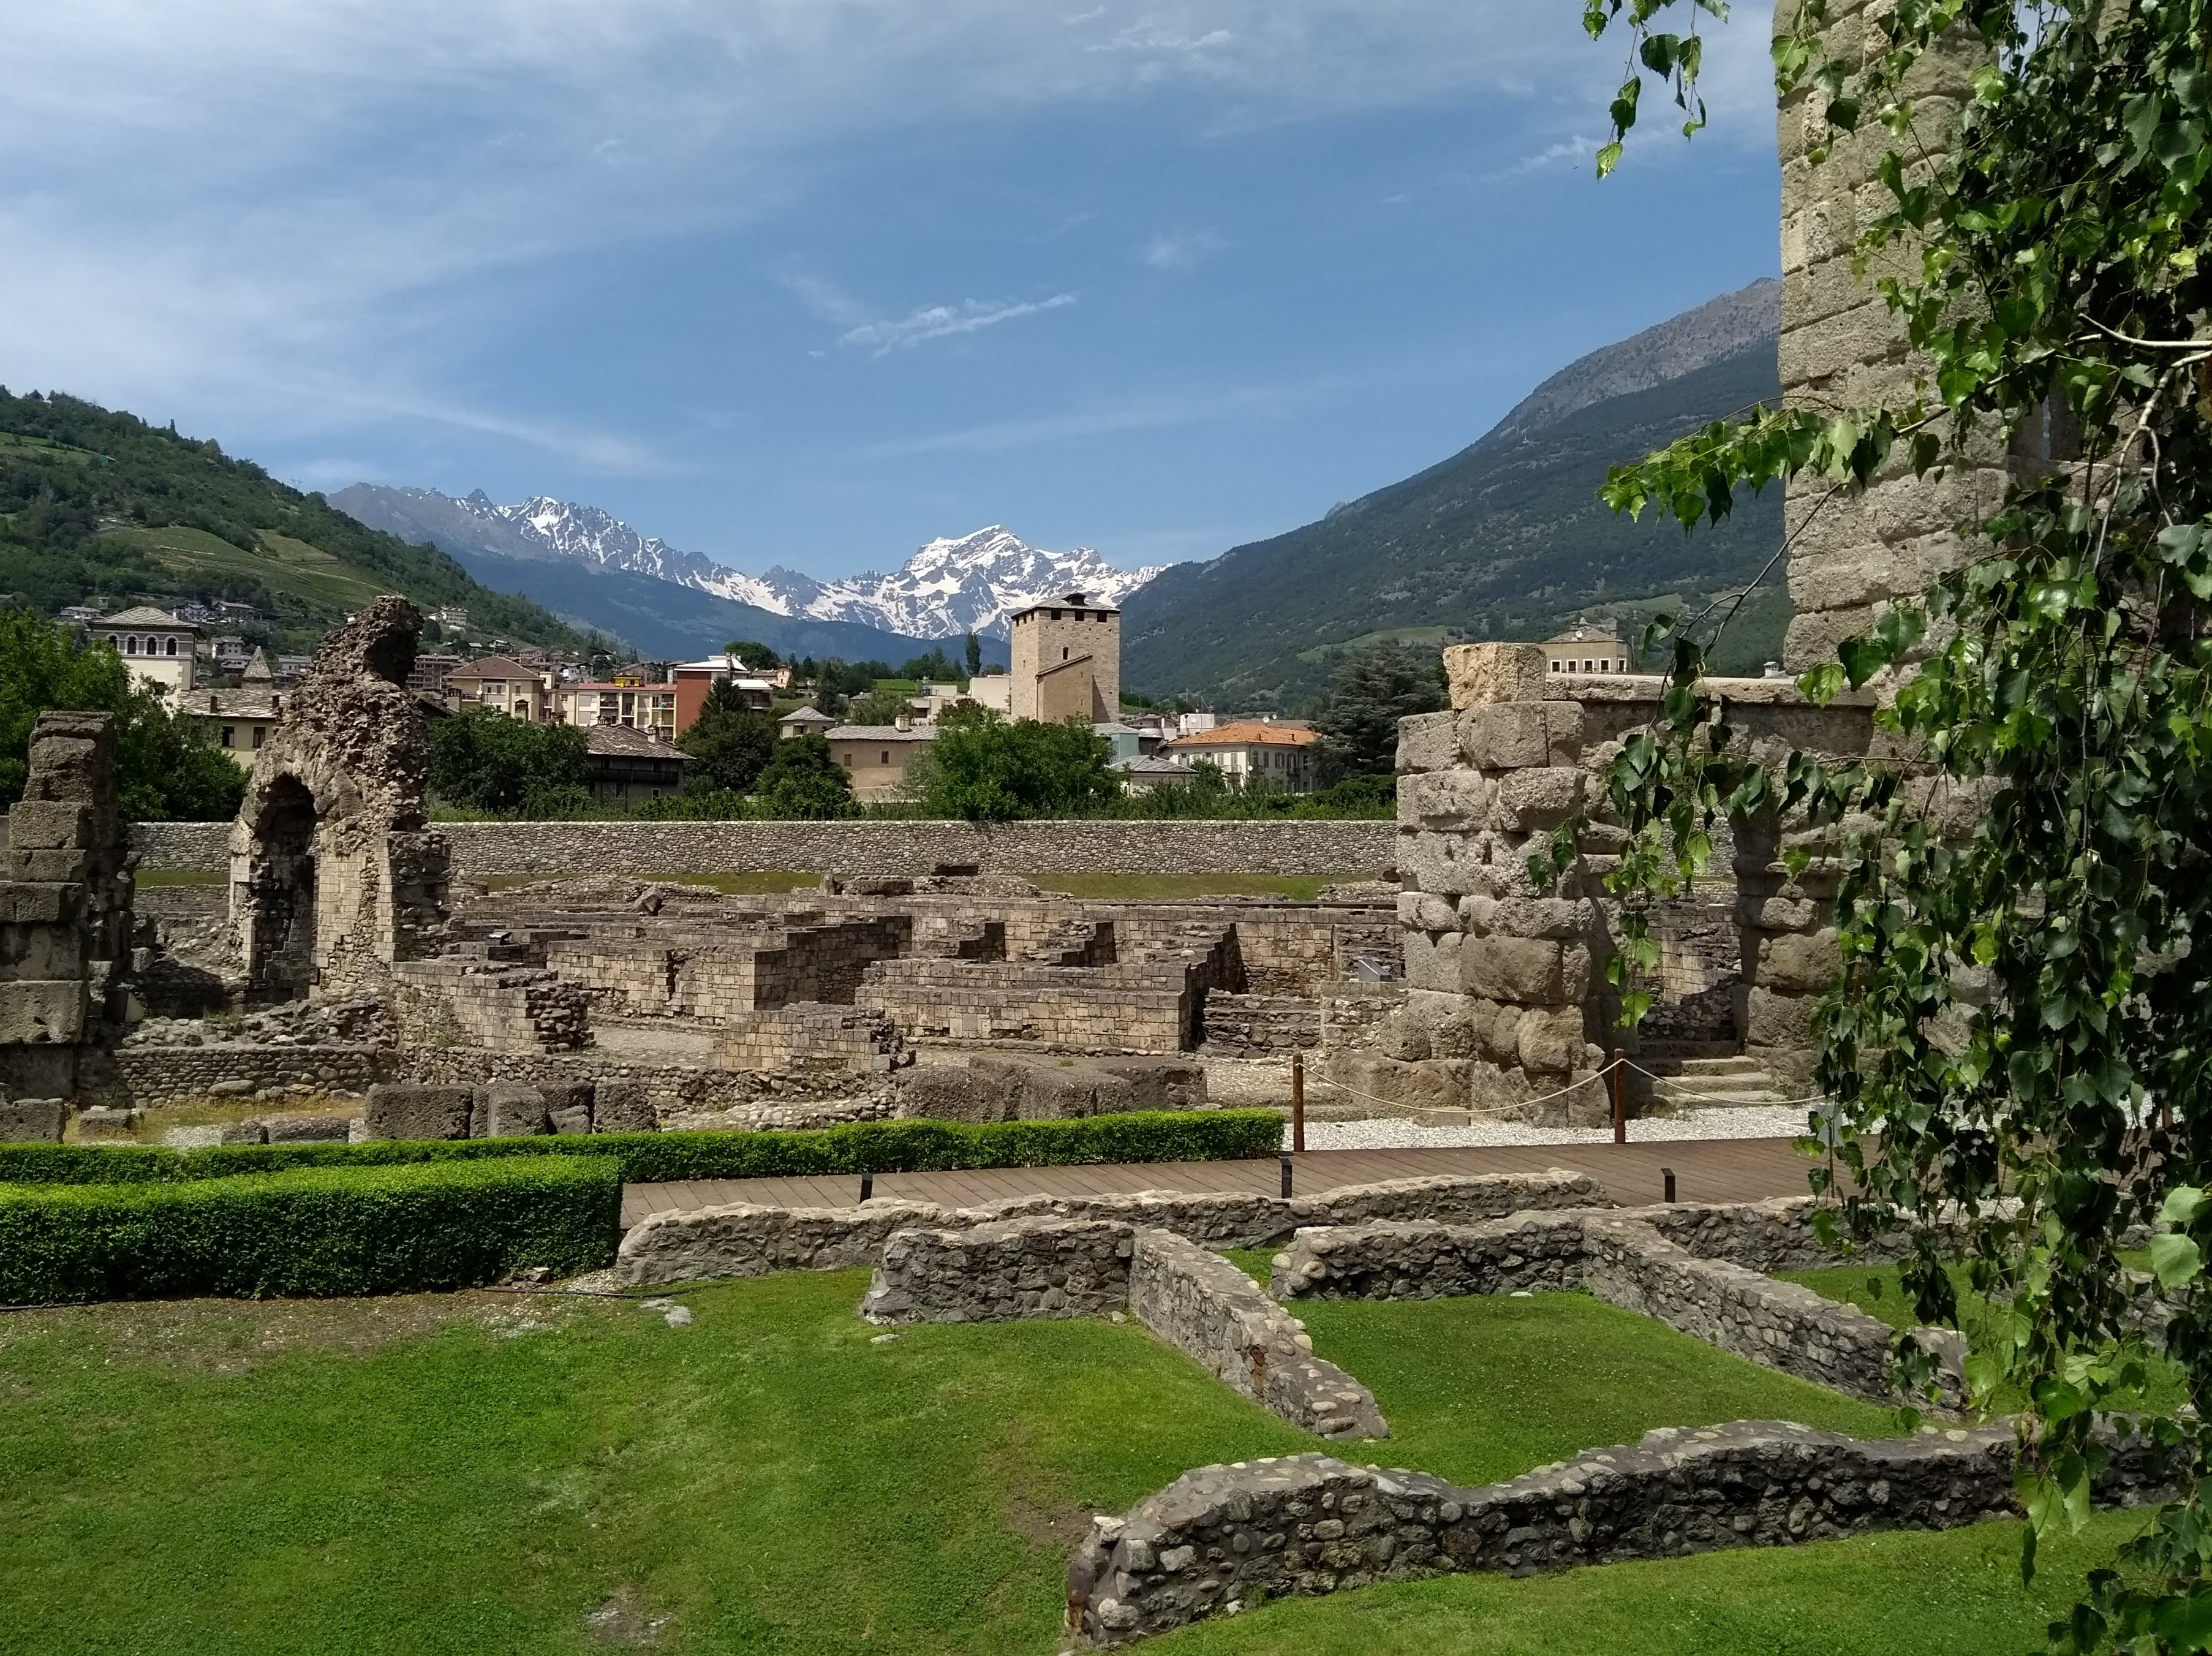 Roman ruins in Aosta things to do